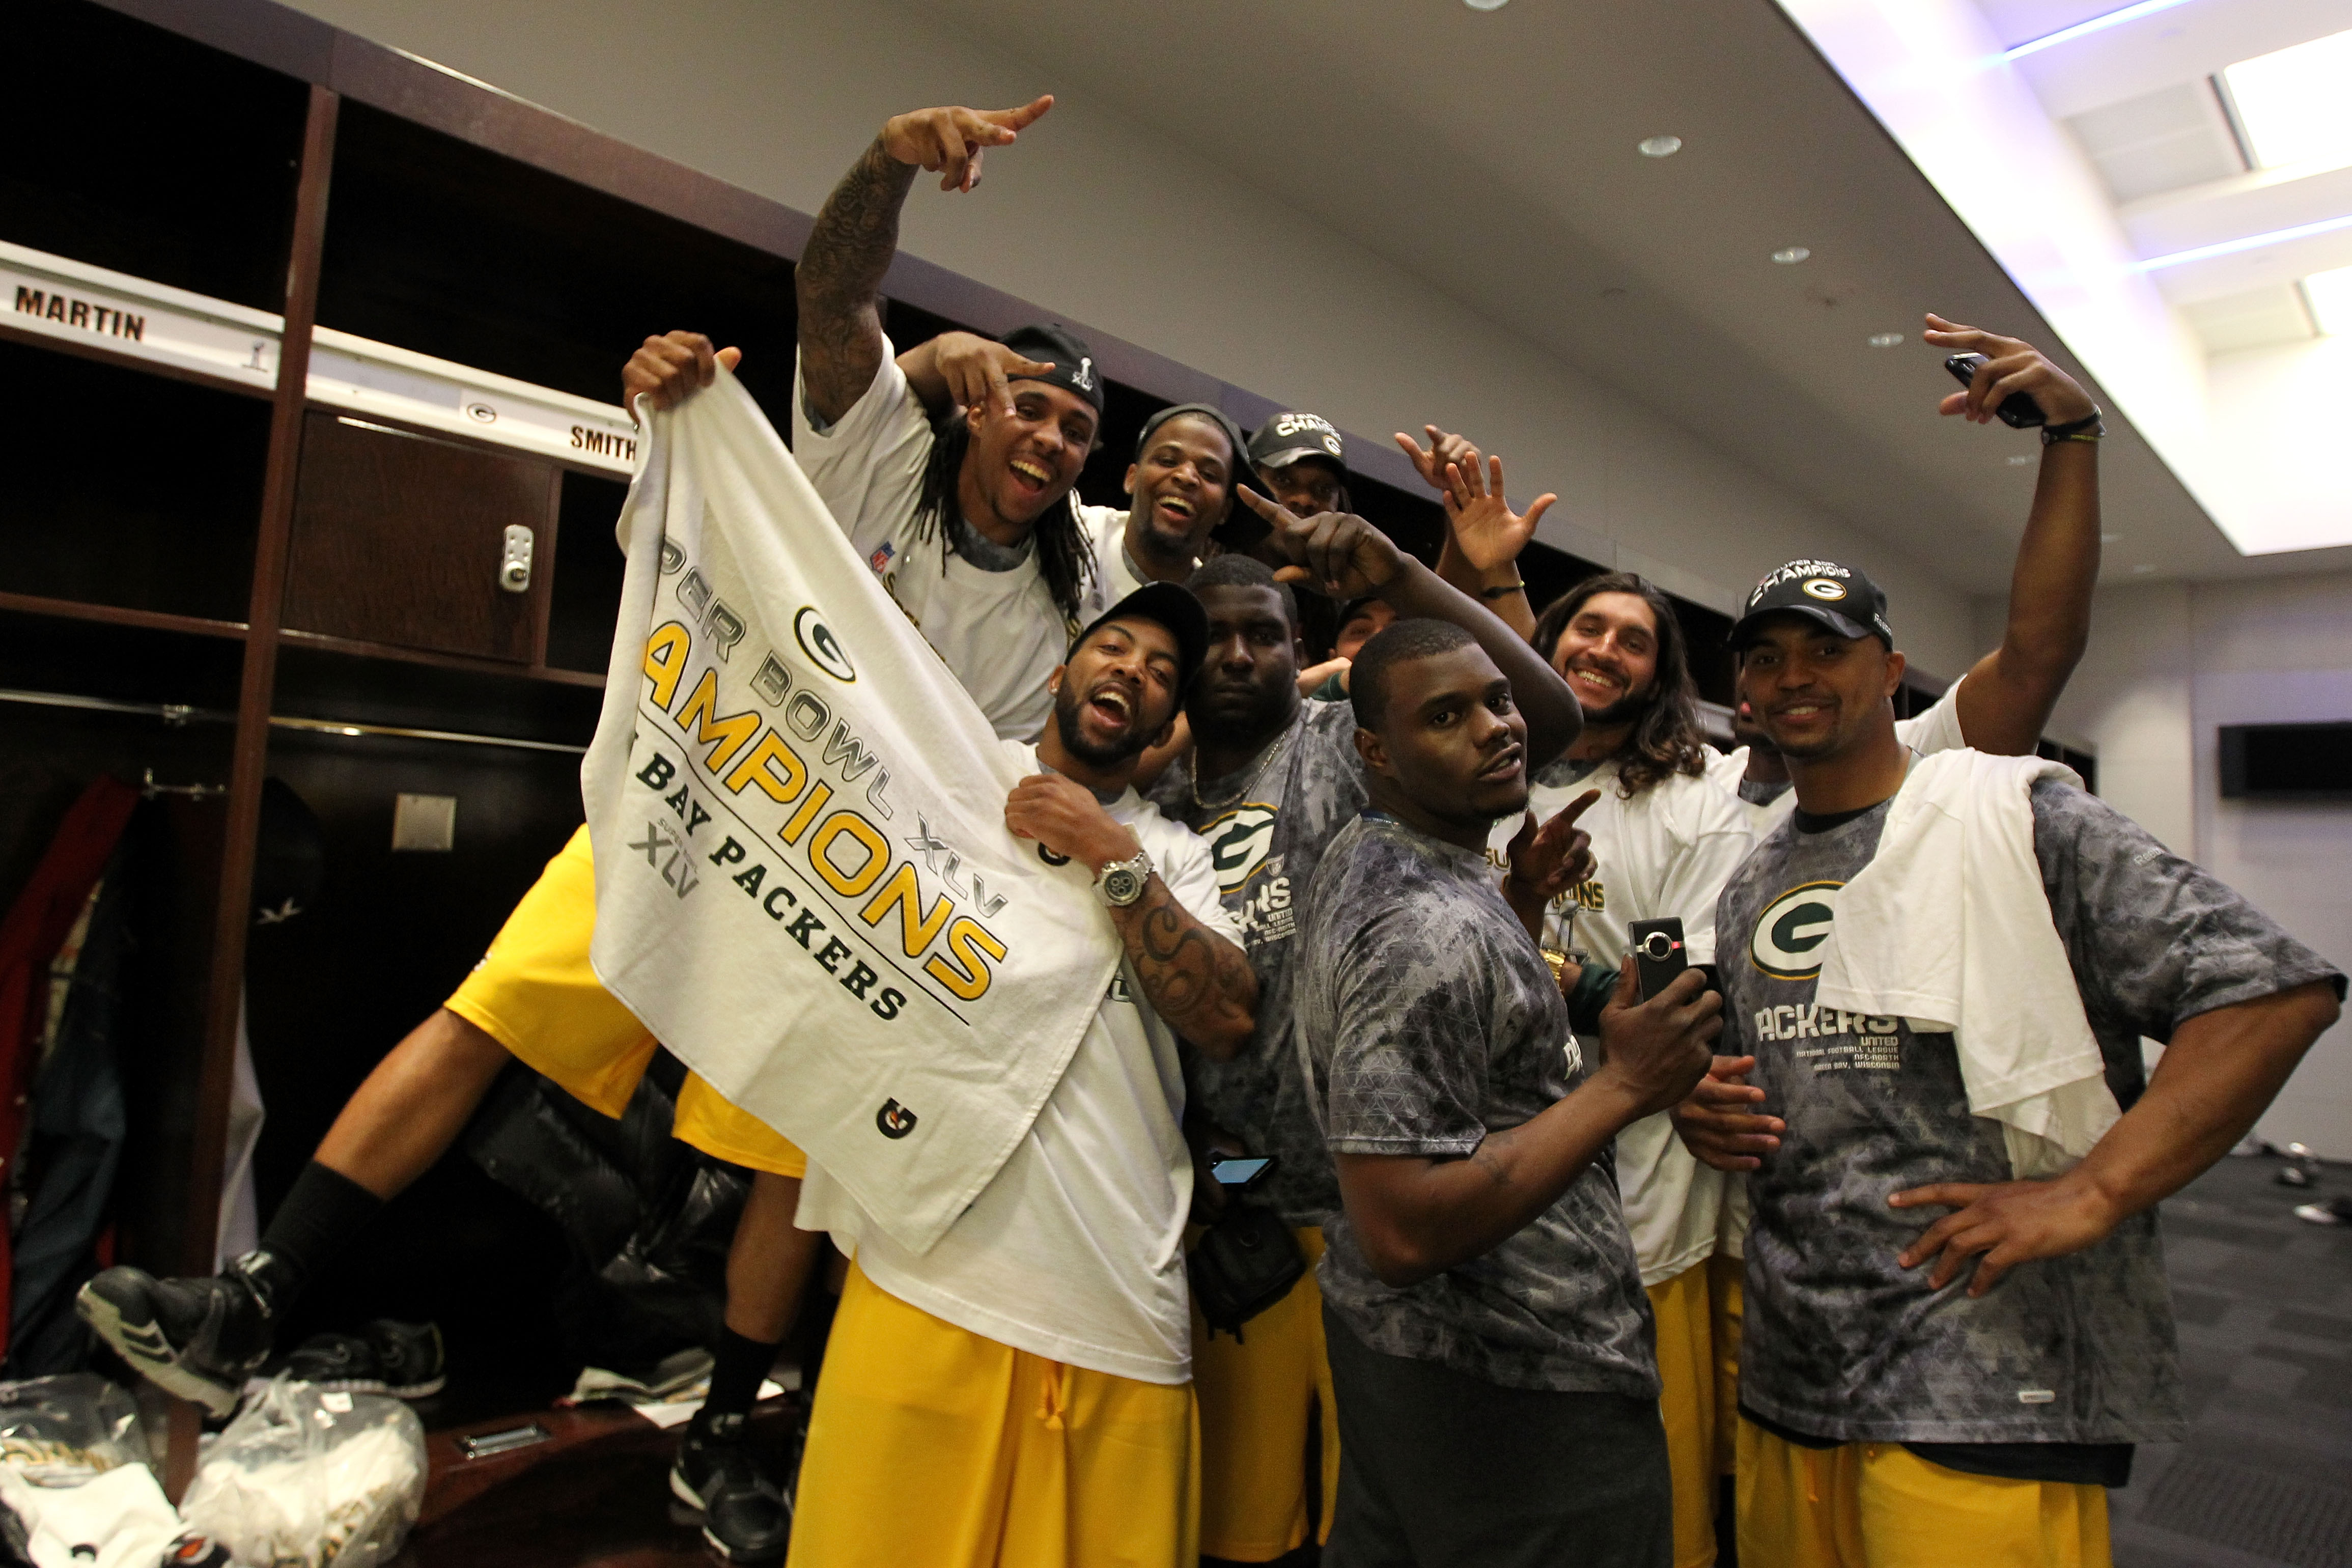 ARLINGTON, TX - FEBRUARY 06:  The Green Bay Packers celebrate in the locker room after winning Super Bowl XLV 31-25 against the Pittsburgh Steelers at Cowboys Stadium on February 6, 2011 in Arlington, Texas.  (Photo by Al Bello/Getty Images)